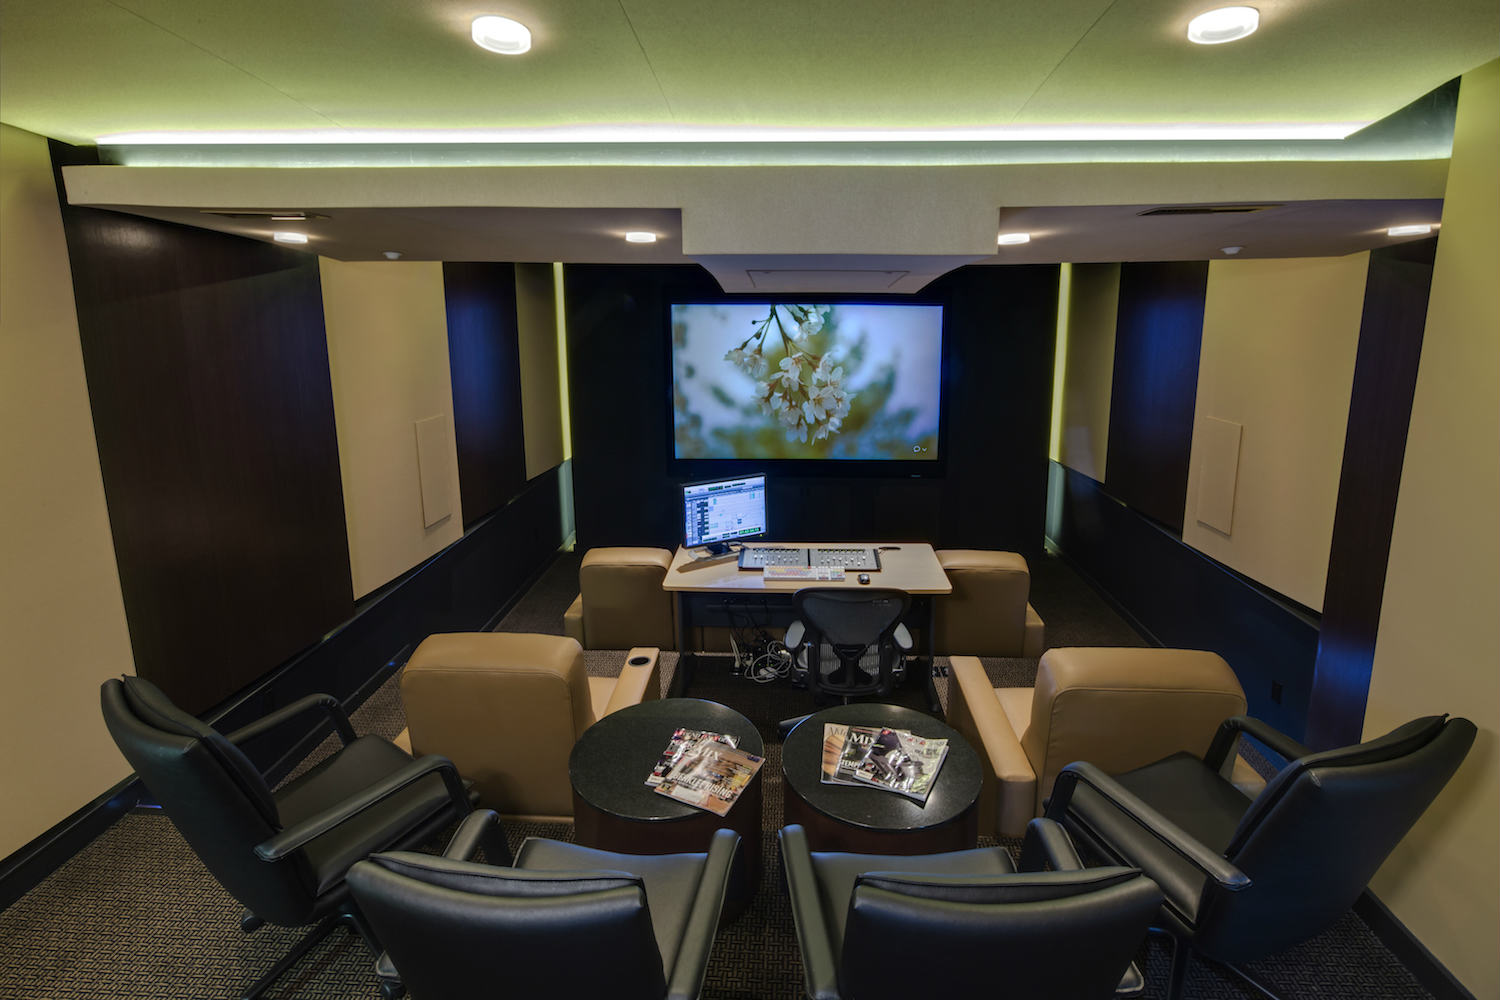 The MacPhails met WSDG to achieve a full up, professionally designed, acoustically superlative residential recording studio for their thriving audio production business. Home theater 2.